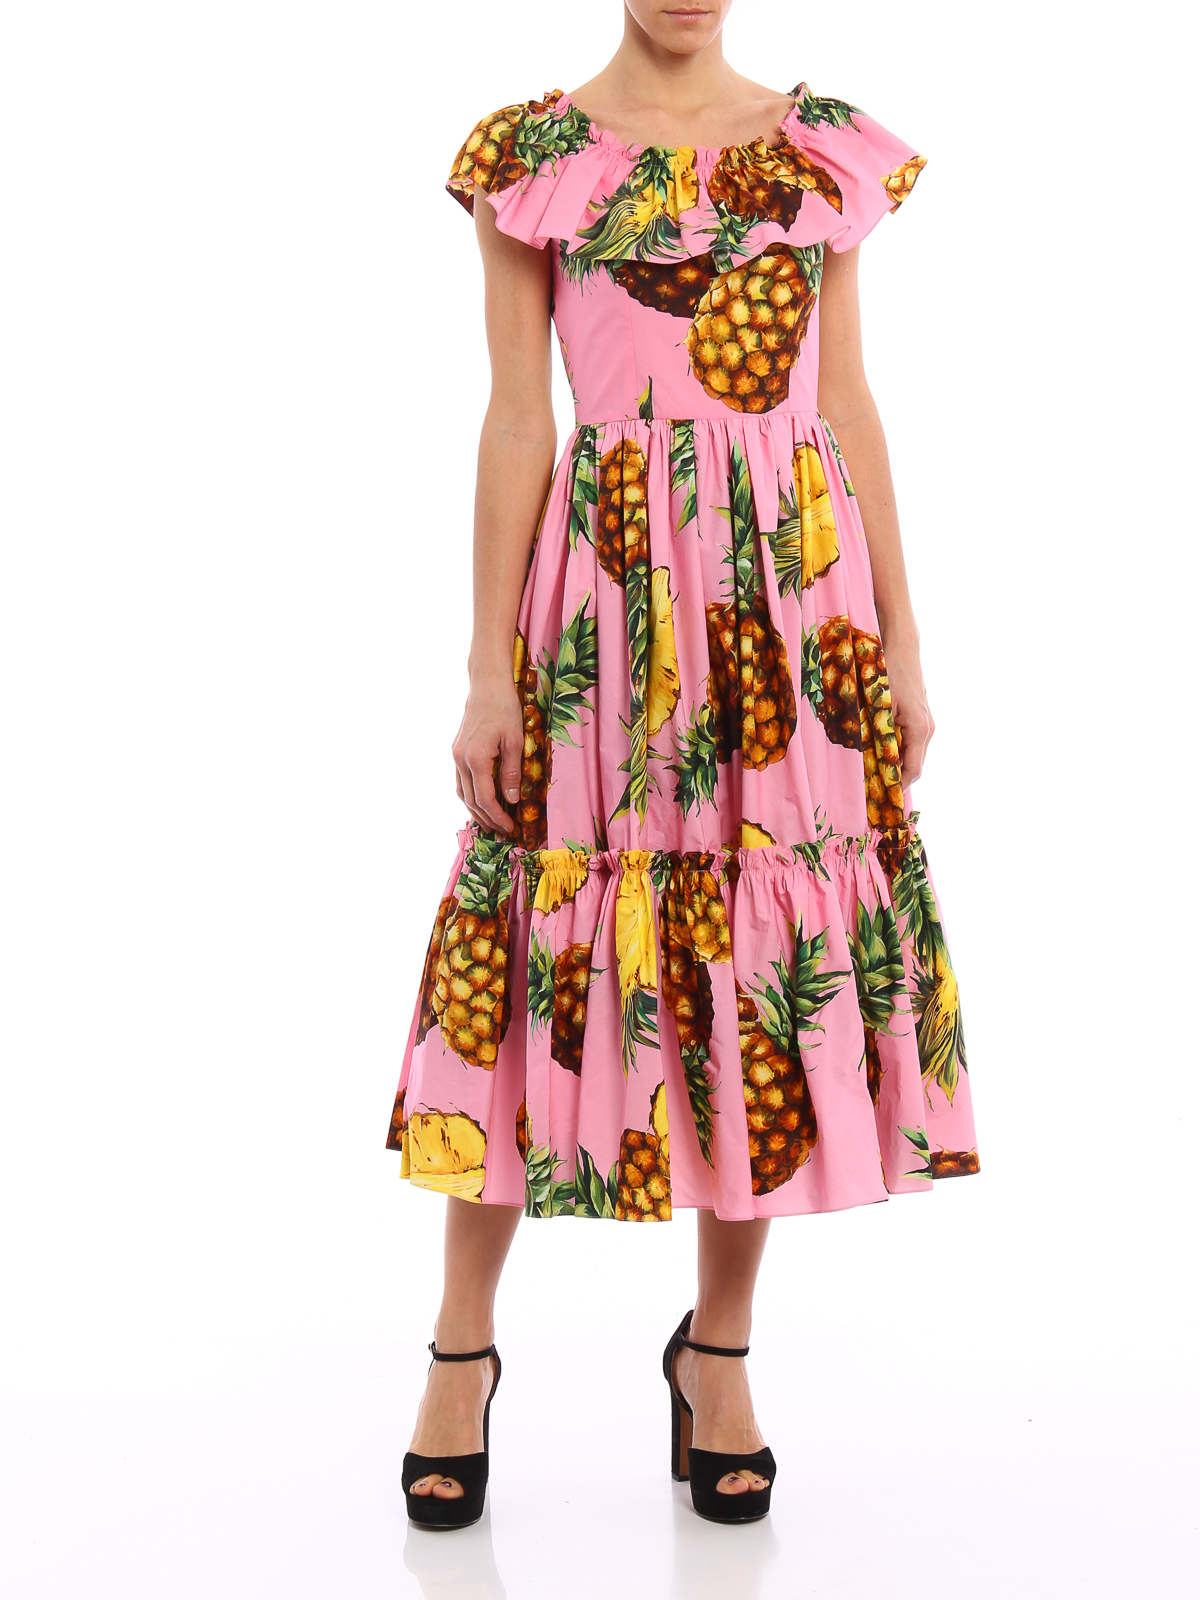 Dolce & Gabbana Pineapple print flounced dress maxi